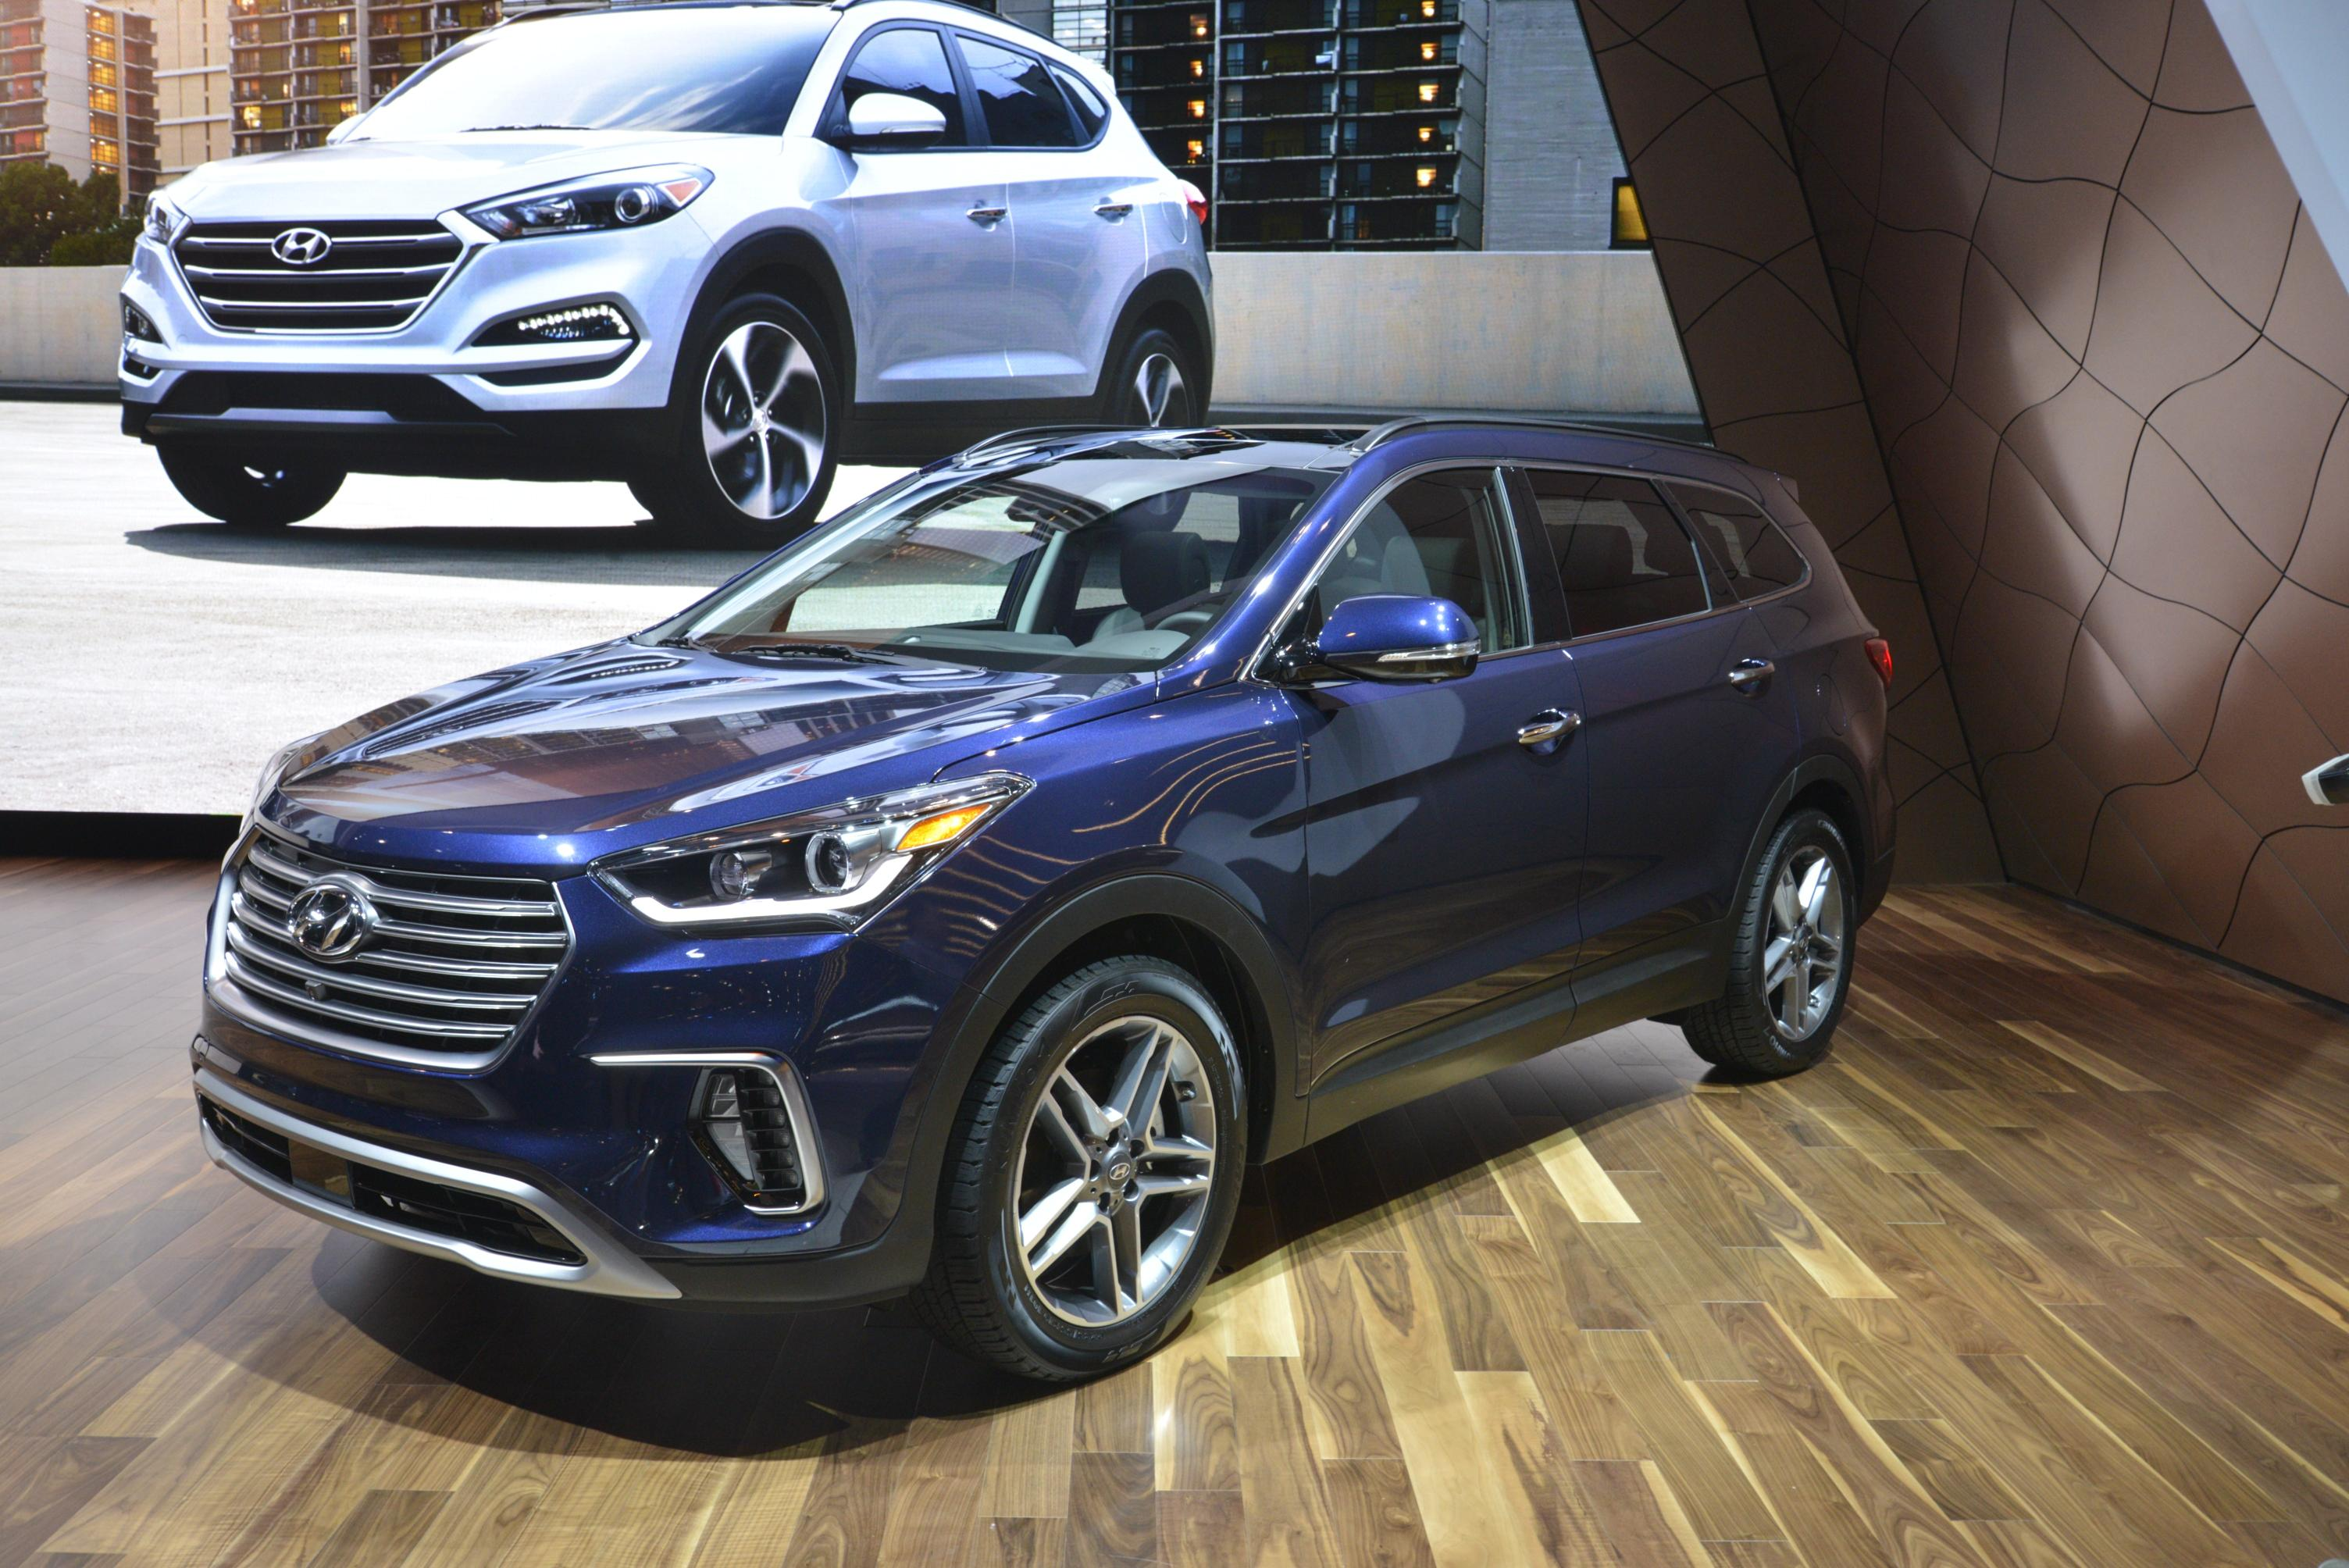 Santa Fe Bmw >> 2017 Hyundai Santa Fe Thinks It's Got a Sexy Facelift in Chicago - autoevolution